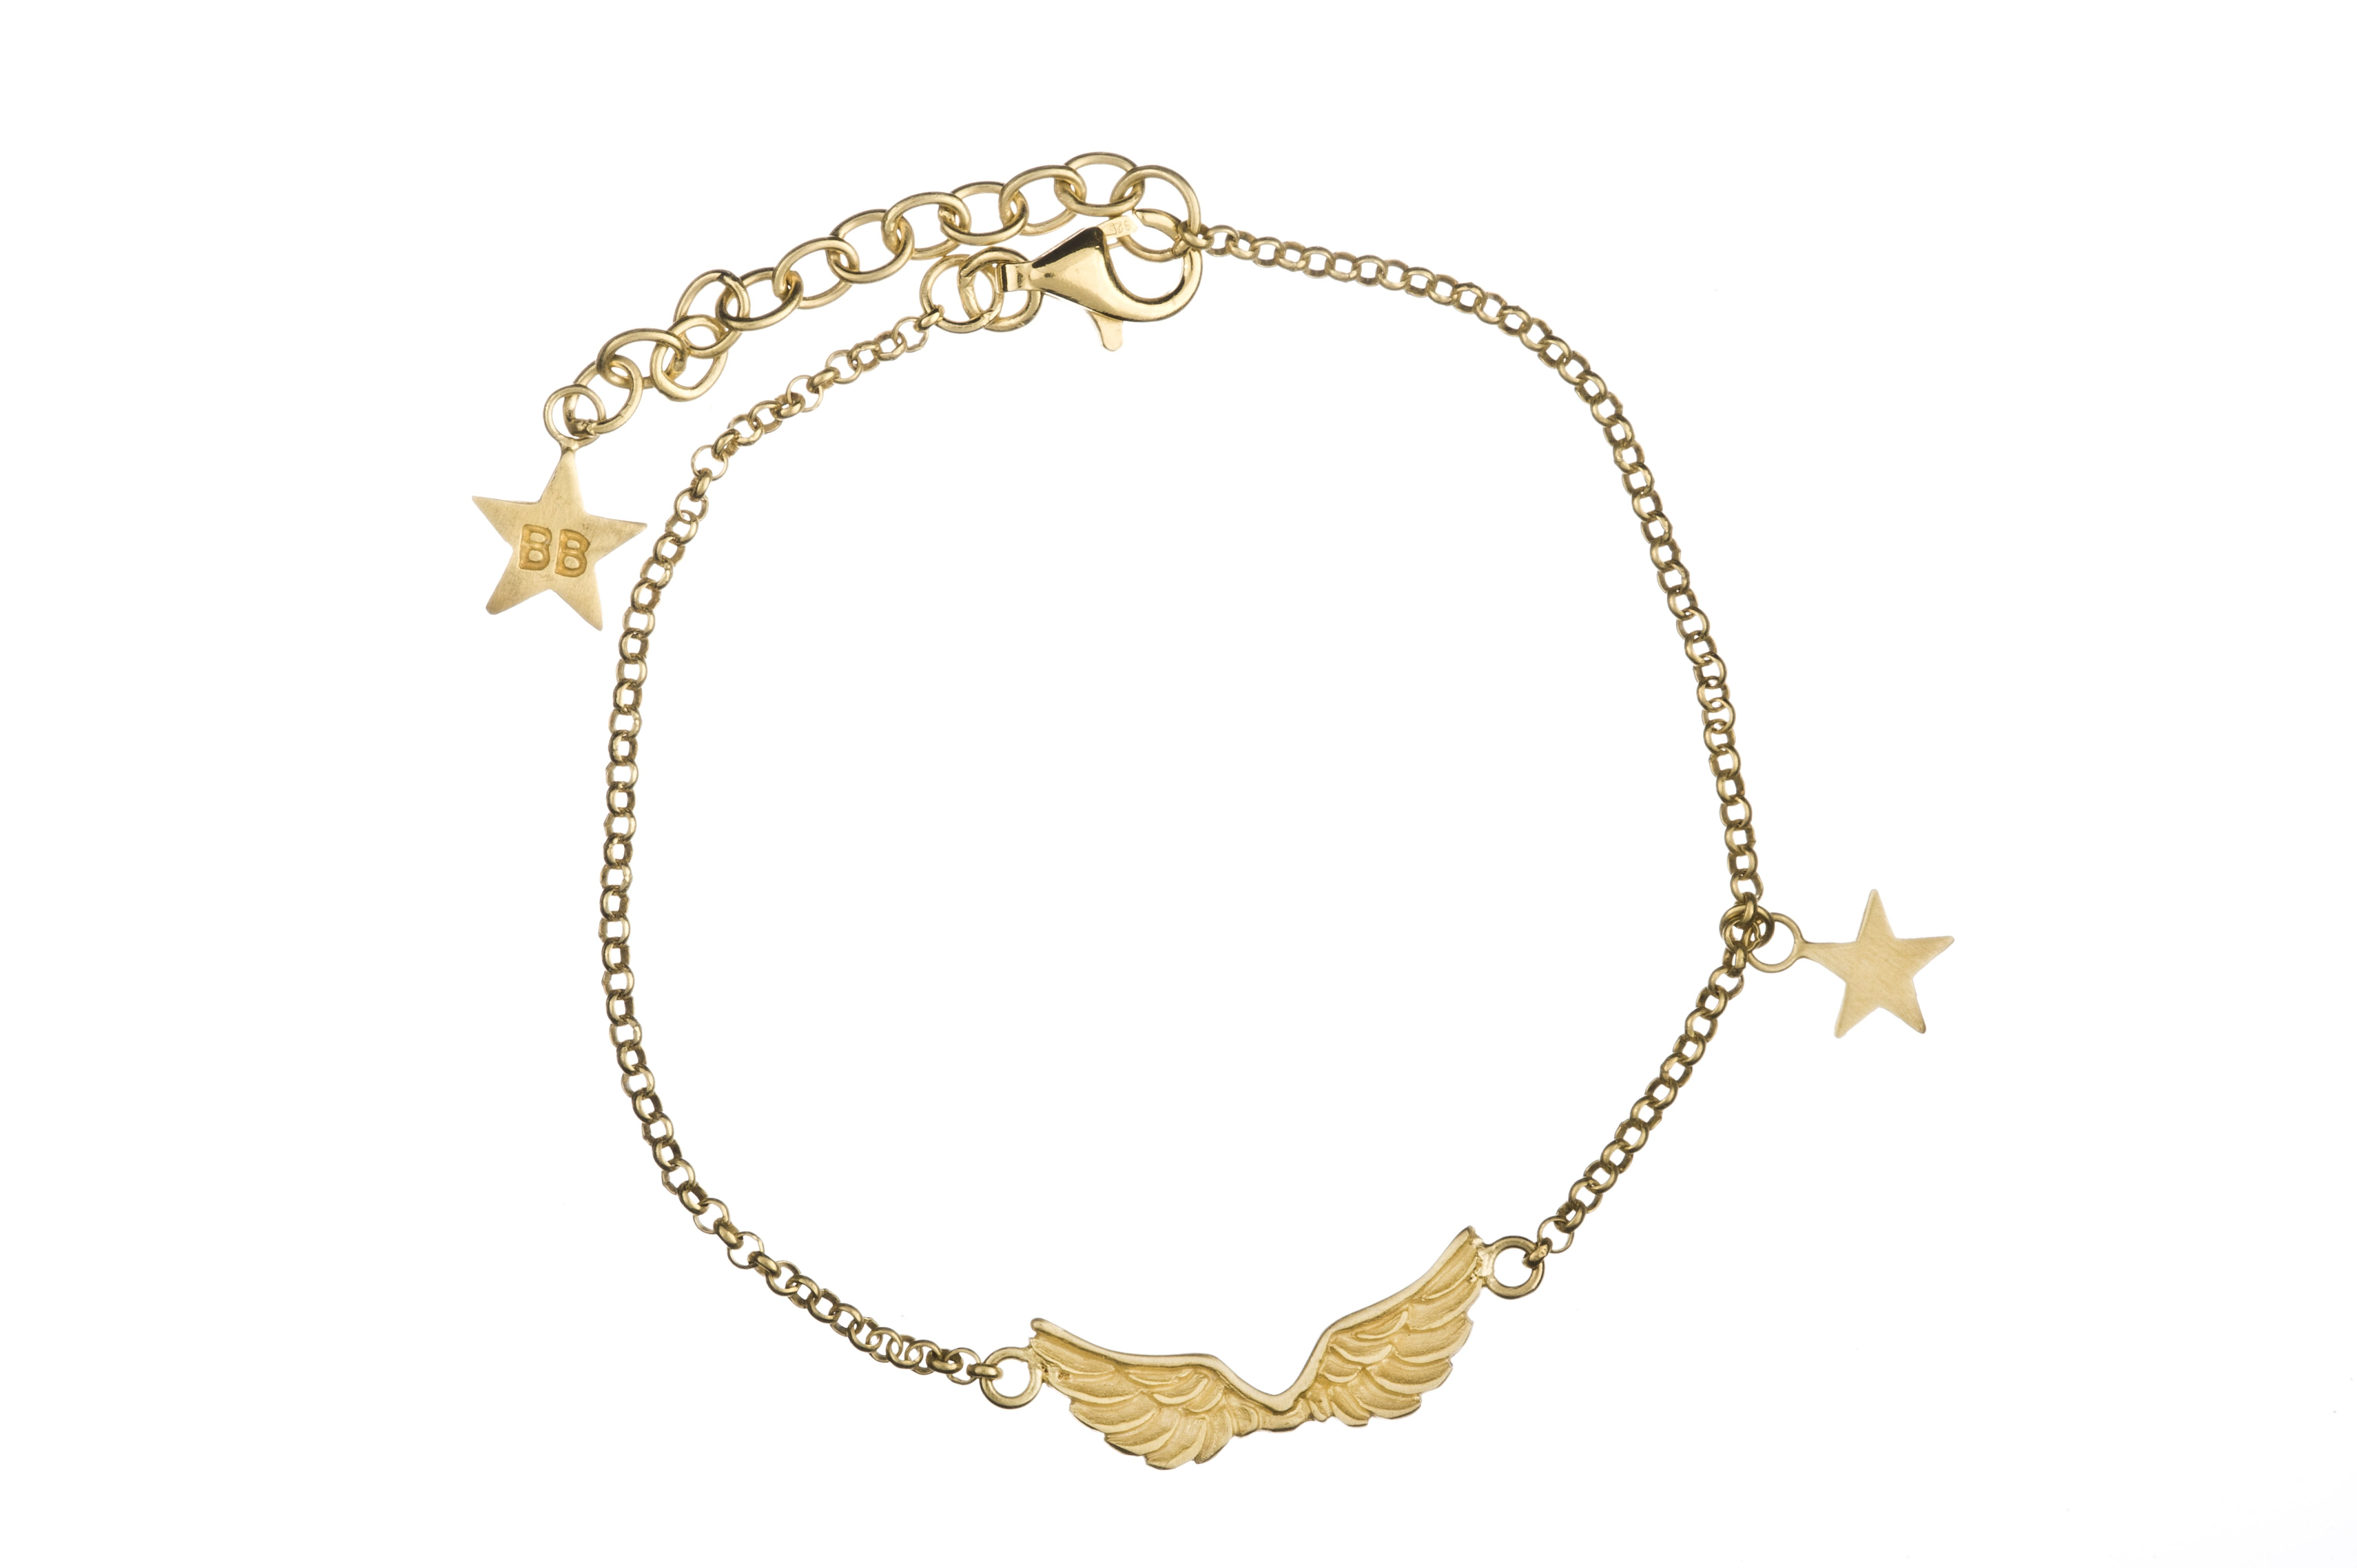 Wings Bracelet Gold Plated by Betty Bogaers http://www.bettybogaers.com